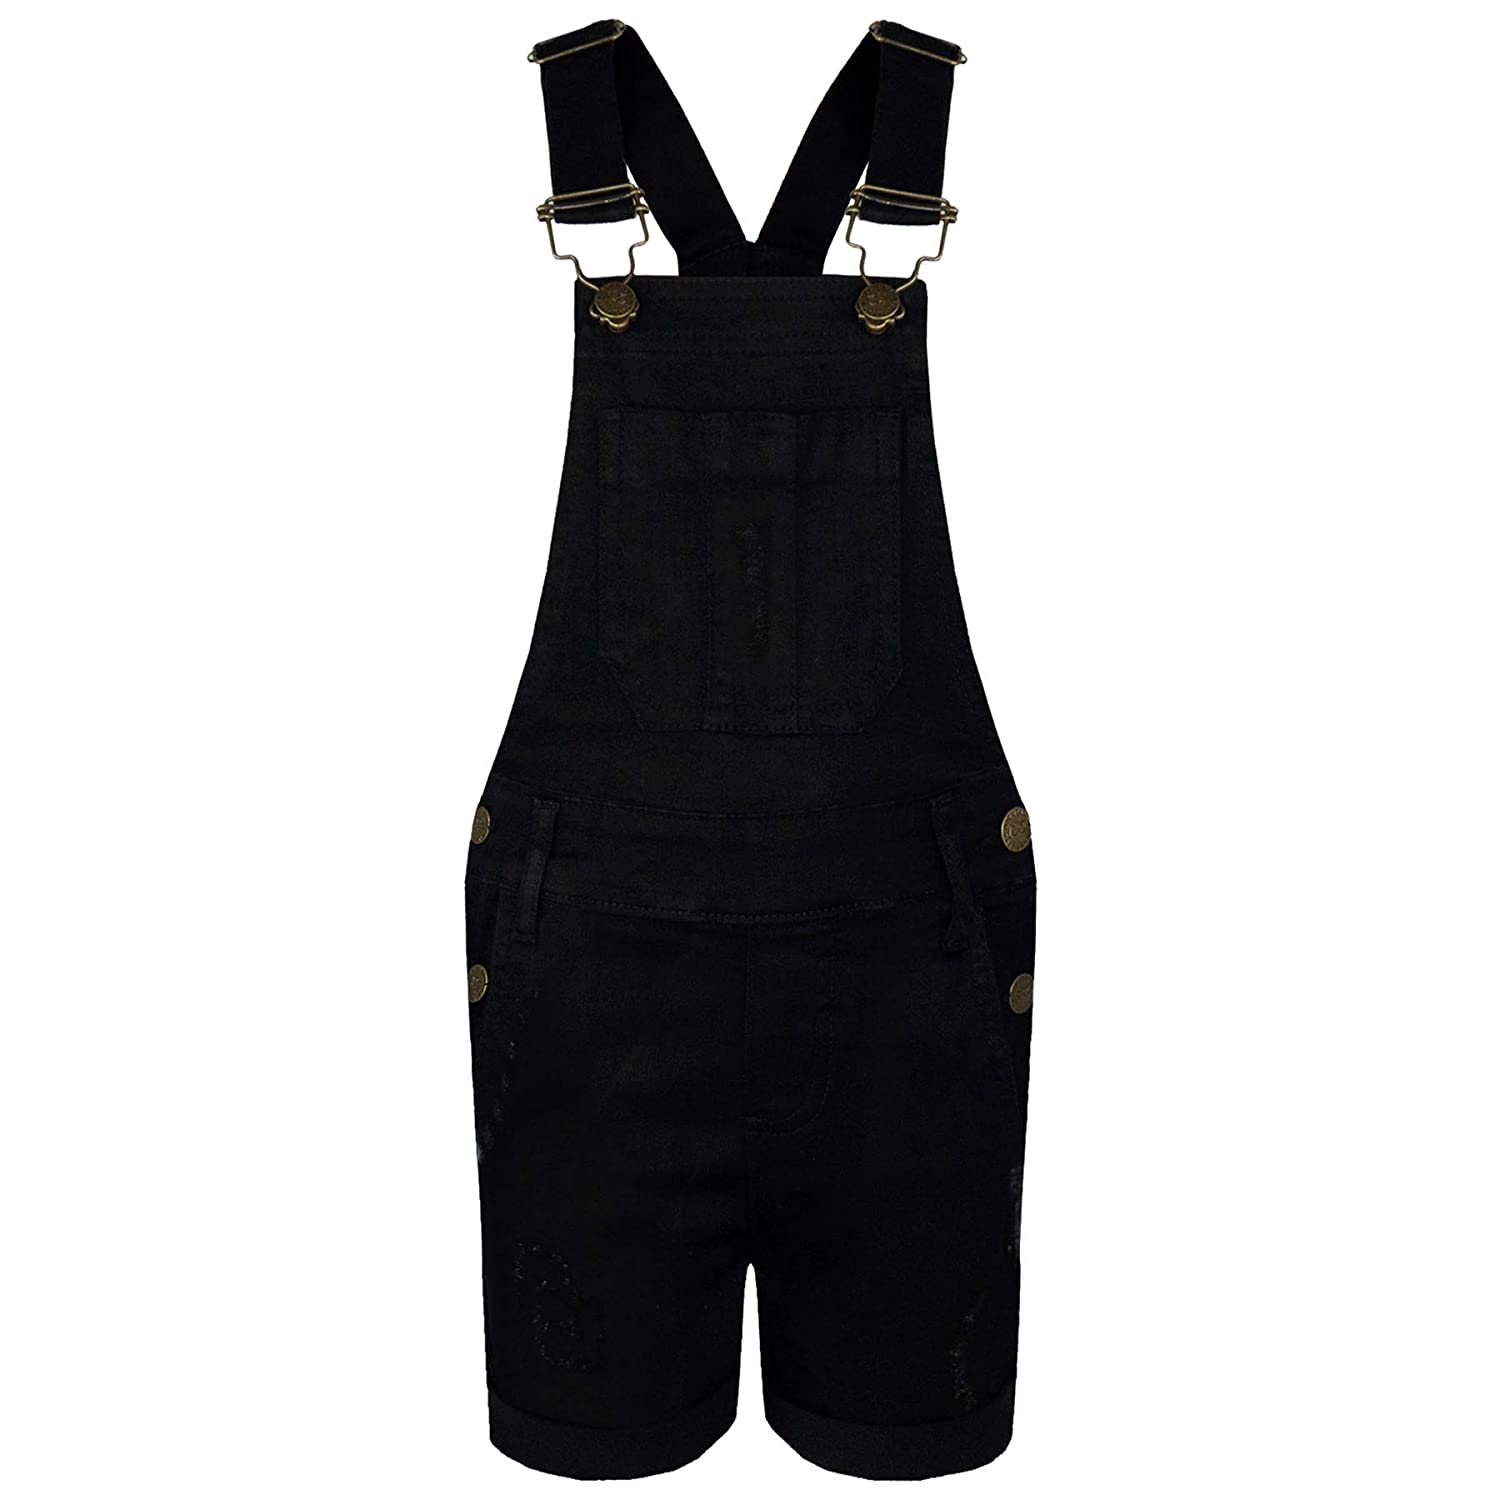 A2Z 4 Kids/® Kids Girls Dungaree Shorts Designers Denim Ripped Stretch Jeans Overall All in One Jumpsuit Playsuit Age 5 6 7 8 9 10 11 12 13 Years